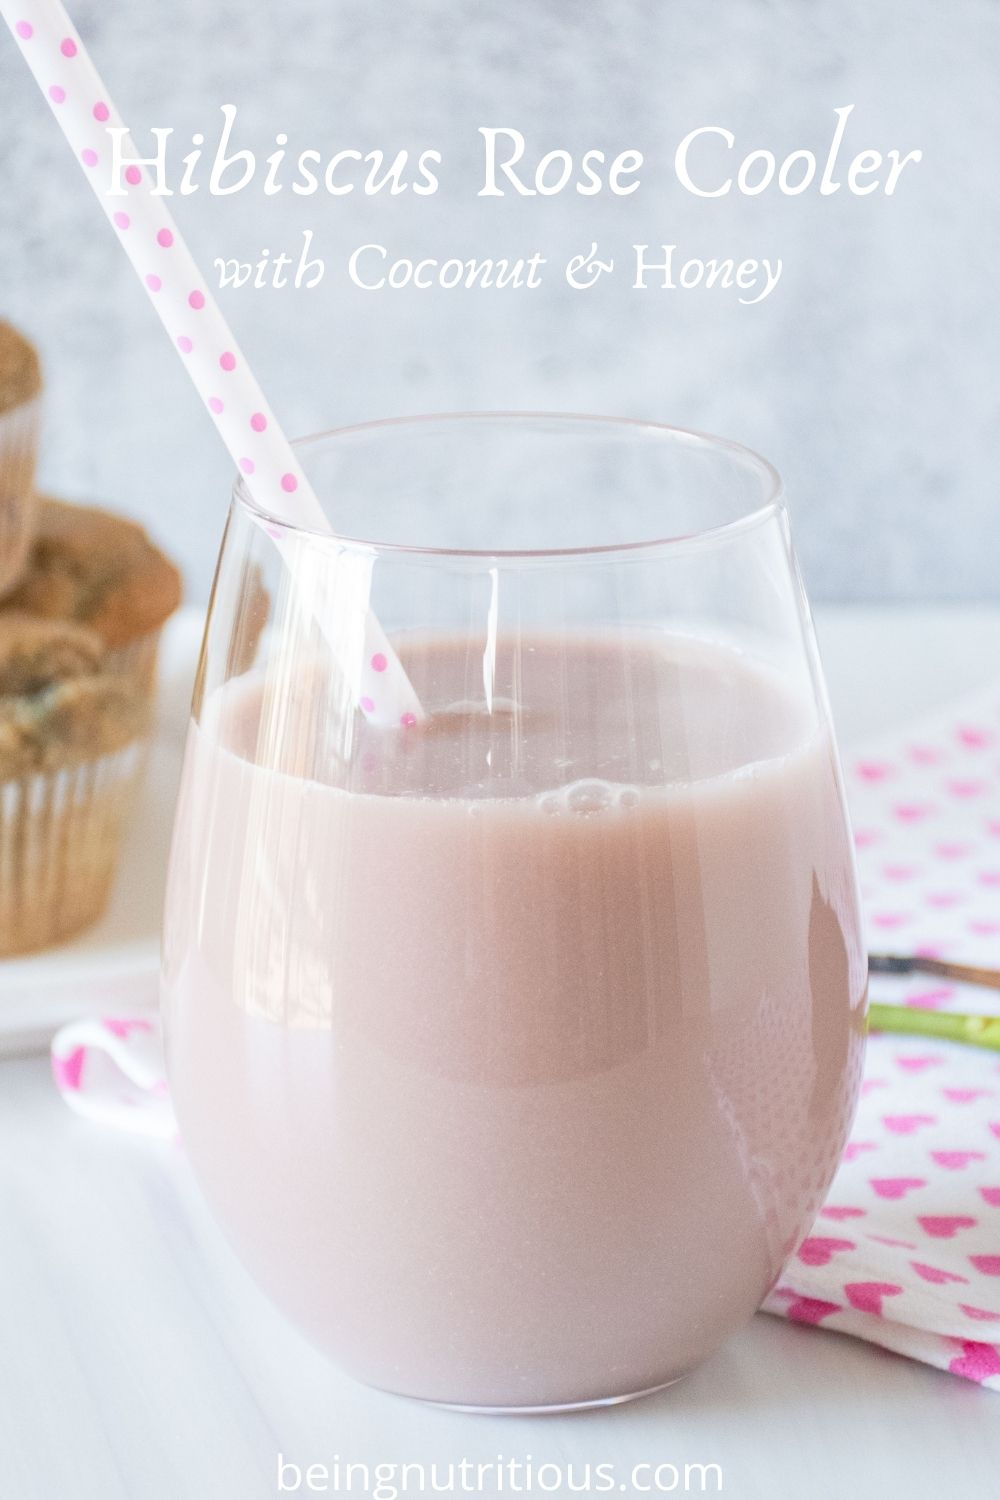 Glass of pink beverage. Text overlay: Hibiscus Rose Cooler with Coconut & Honey.